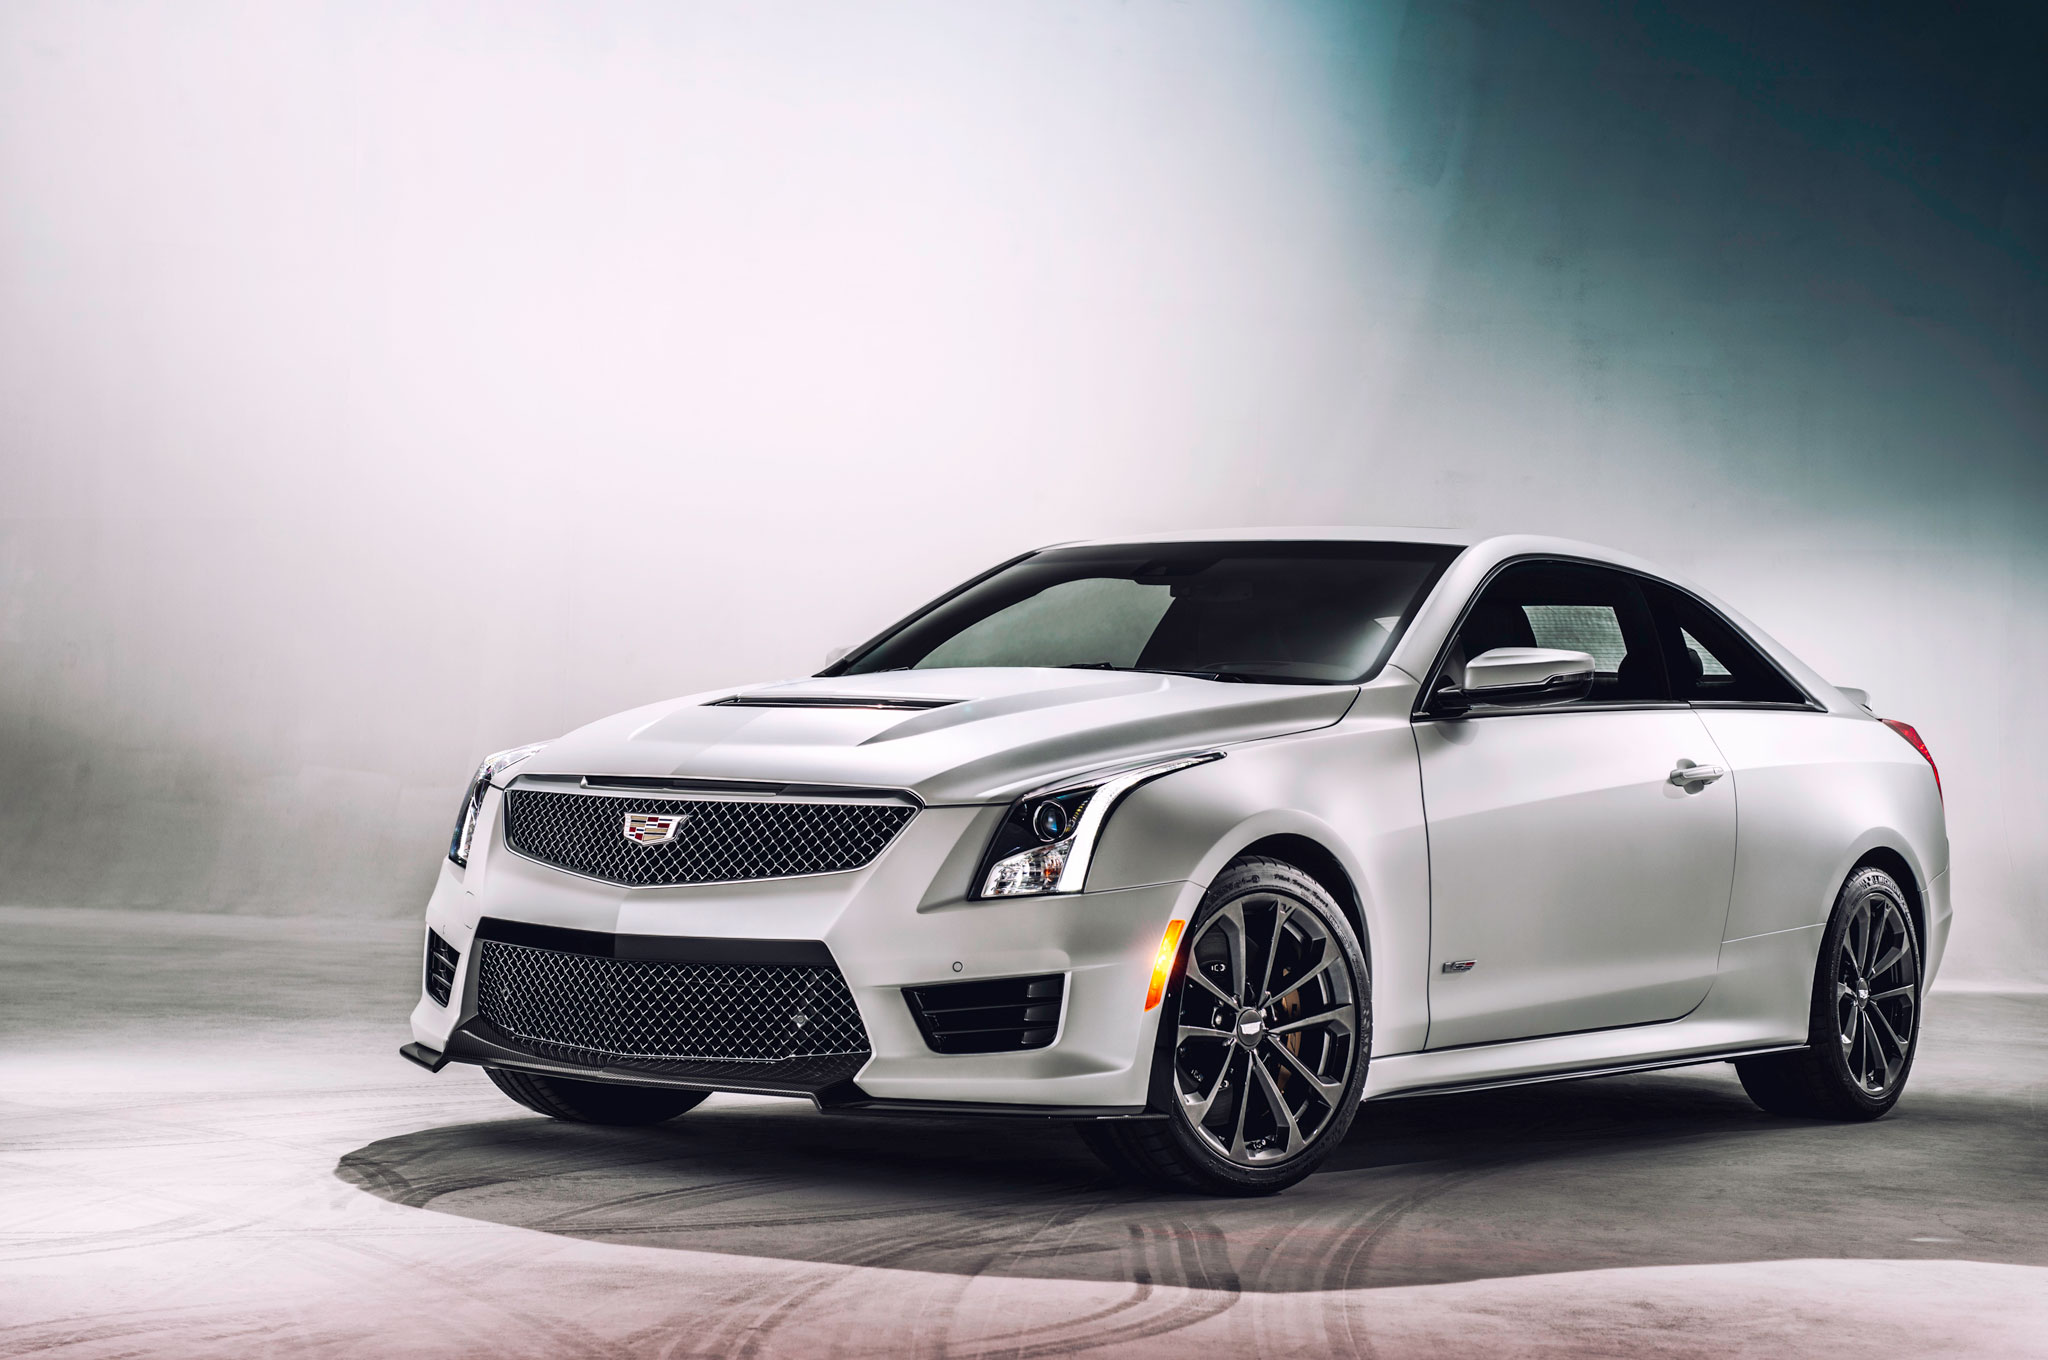 2016 cadillac ats v sedan starts at 61 460 coupe from 63 660. Black Bedroom Furniture Sets. Home Design Ideas